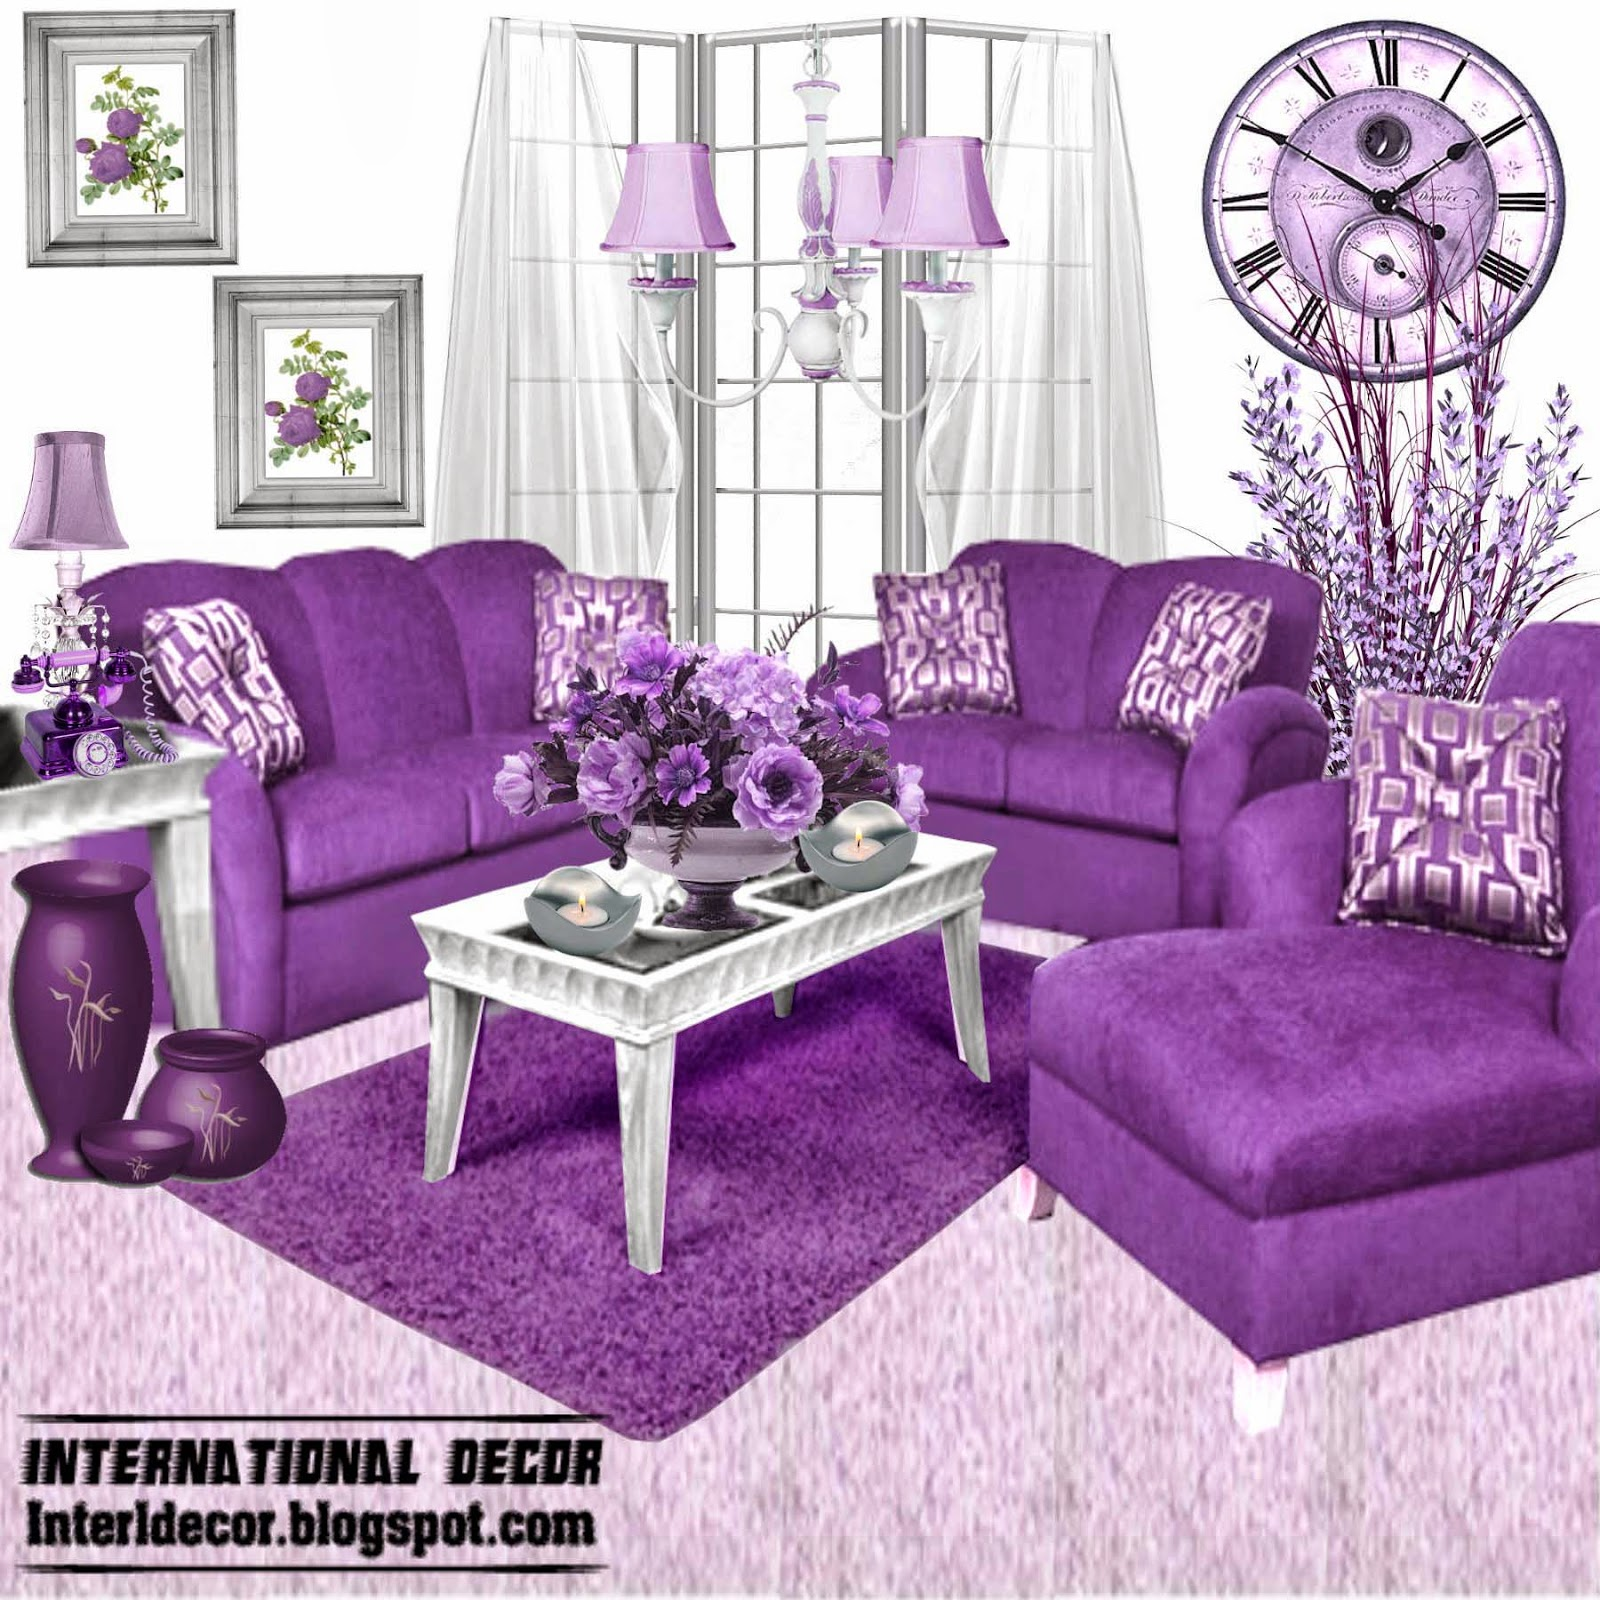 Interldecor.blogspot.co.uk